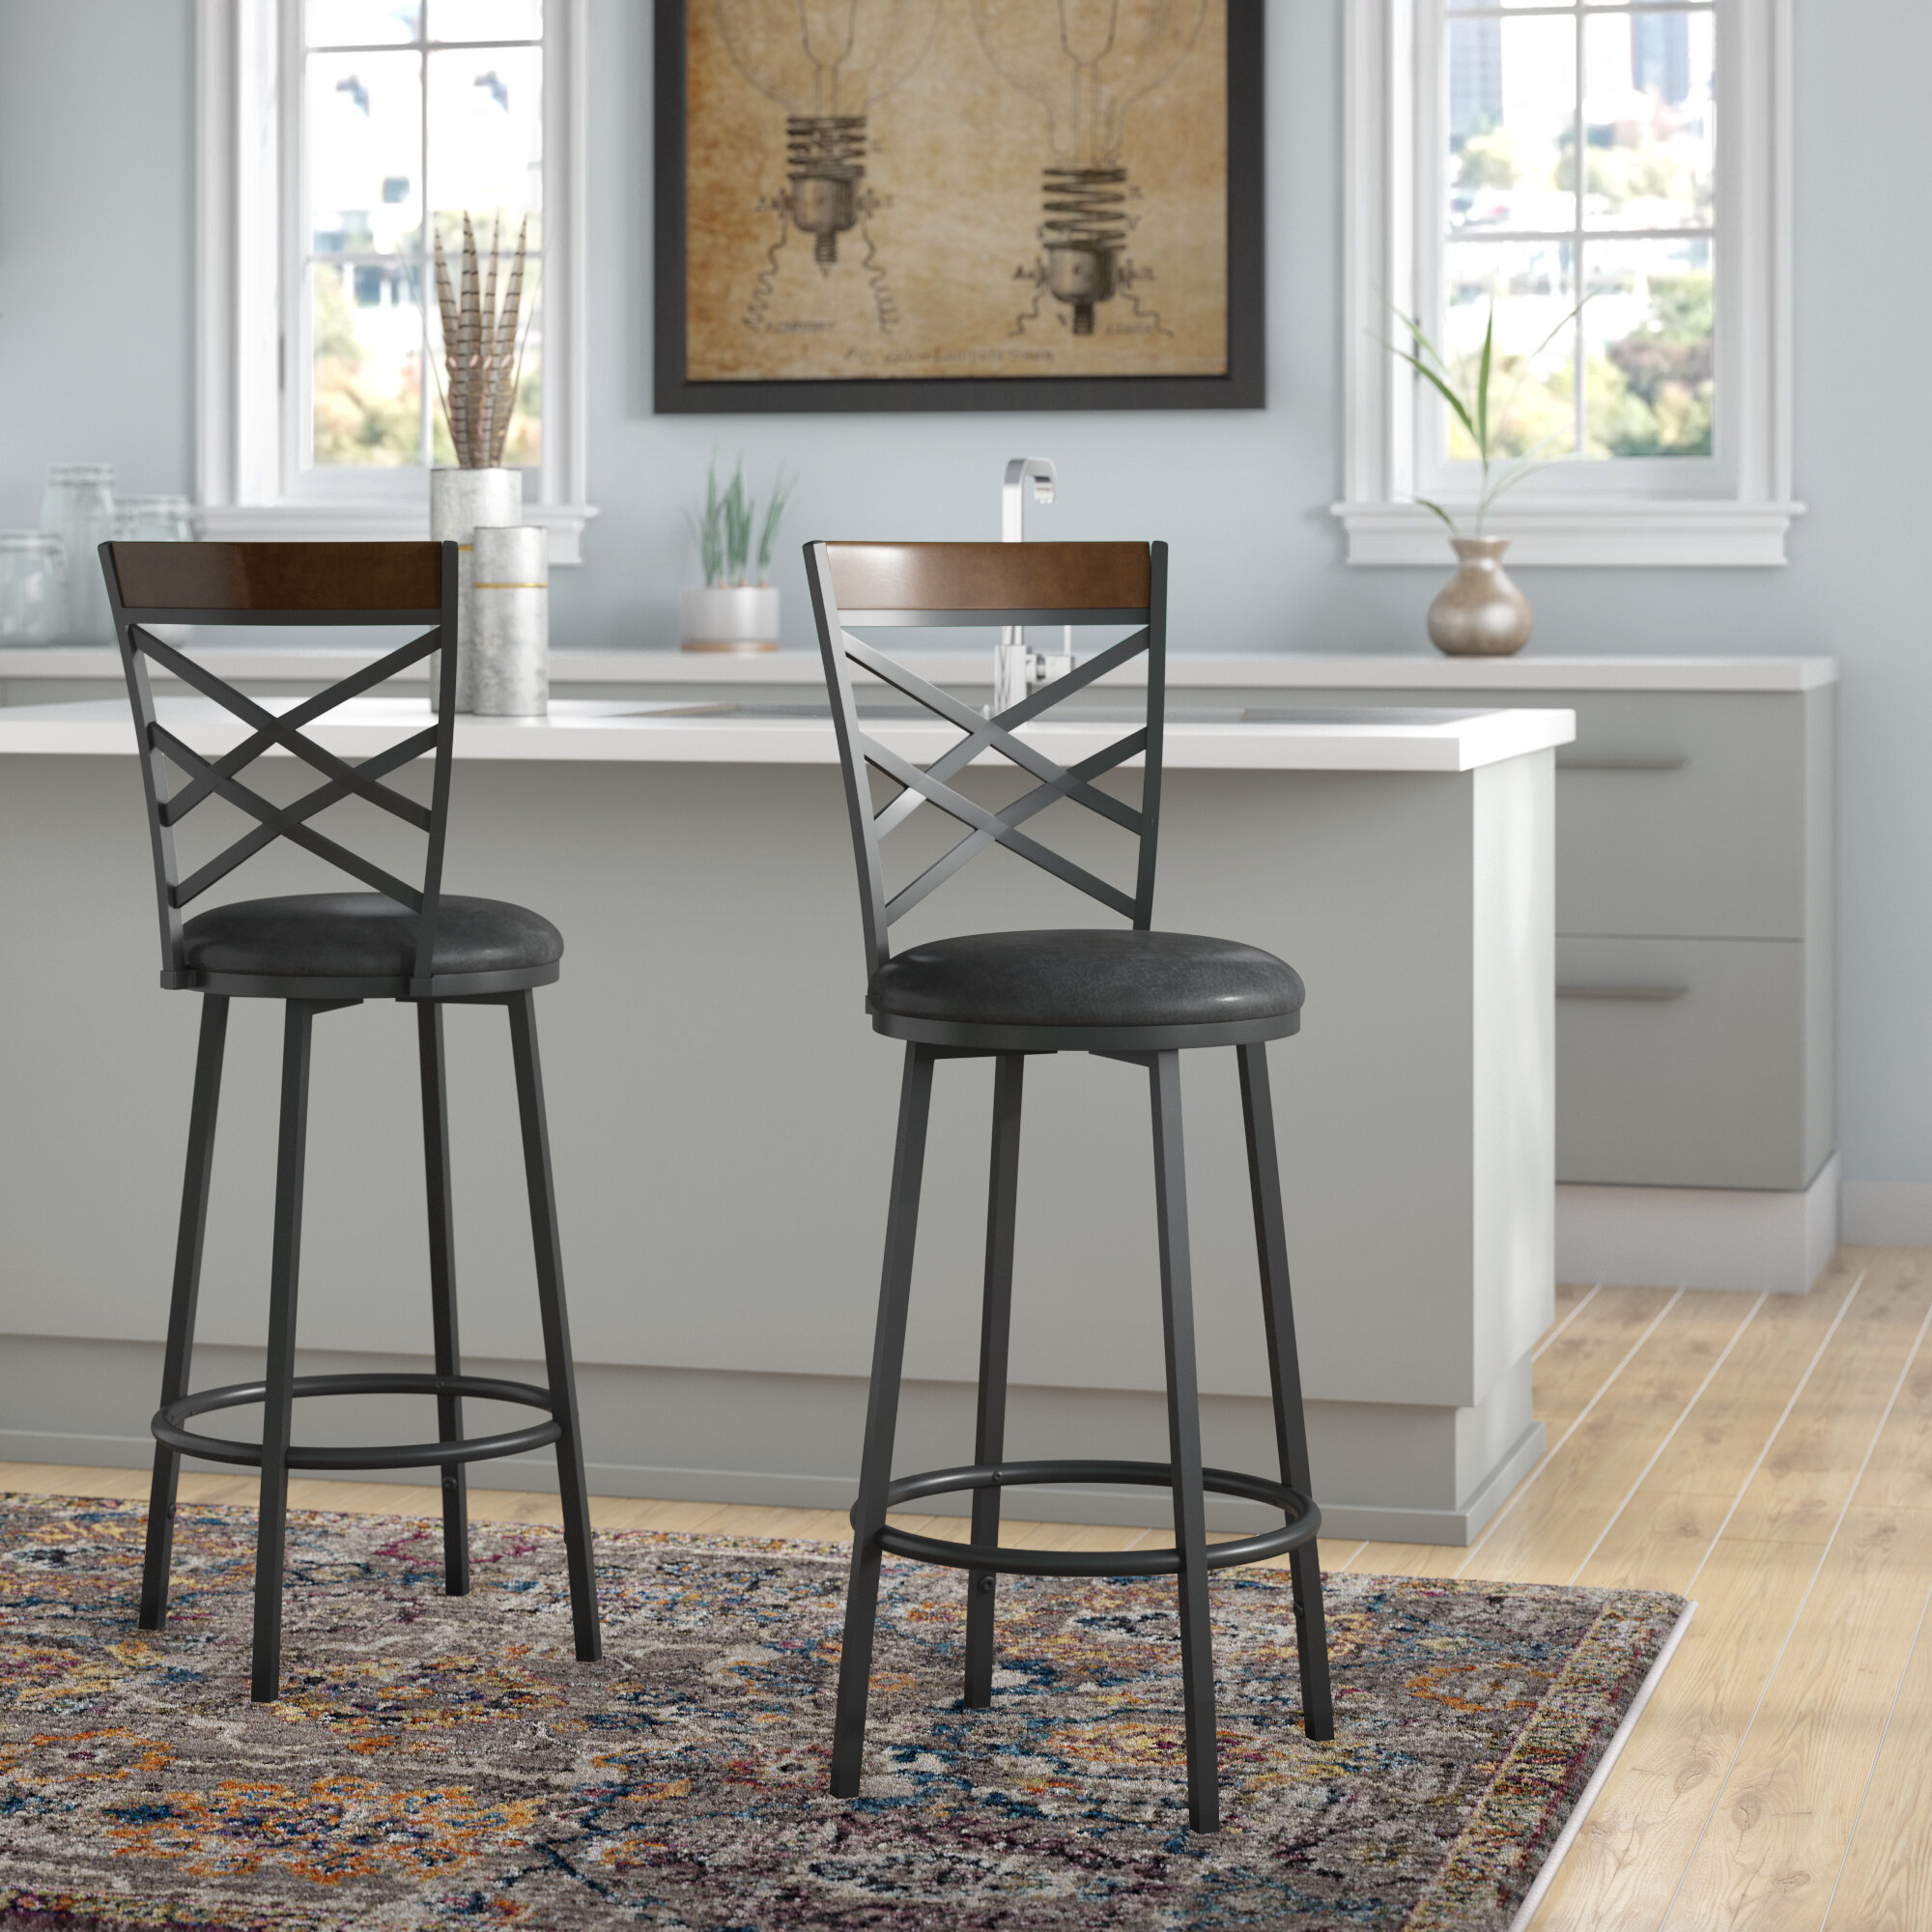 Millwood Pines Bar Stools Counter Stools You Ll Love In 2021 Wayfair